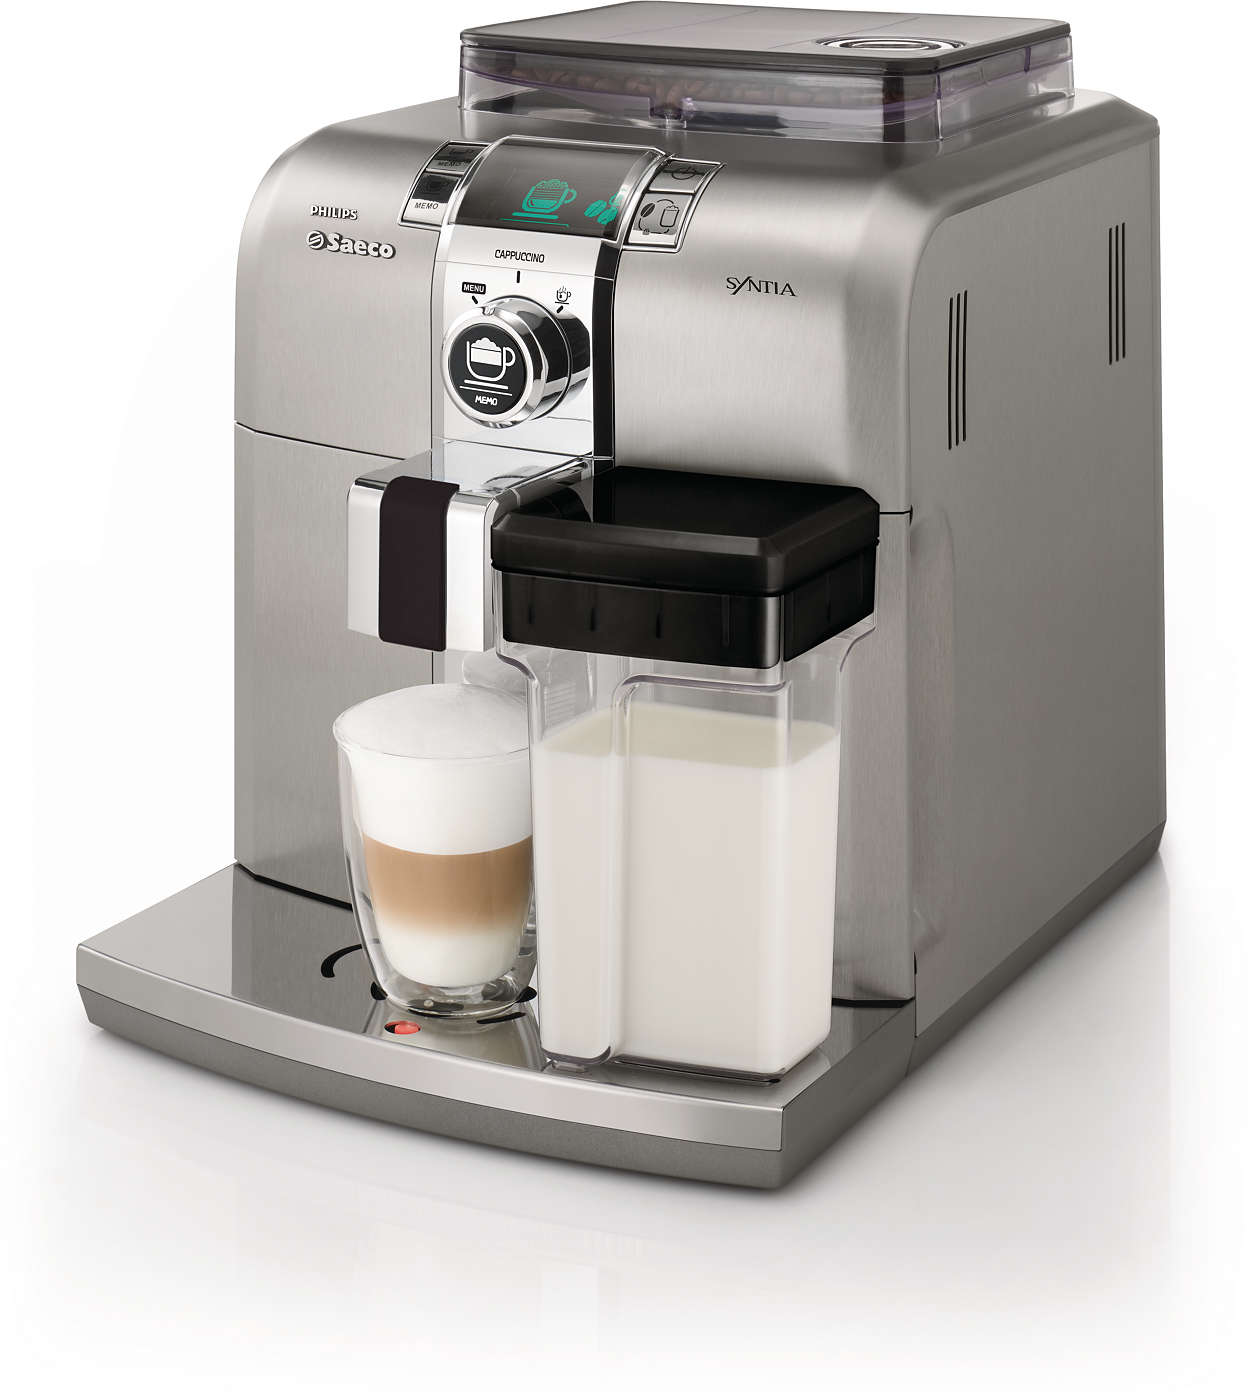 syntia super automatic espresso machine hd8838 01 saeco. Black Bedroom Furniture Sets. Home Design Ideas